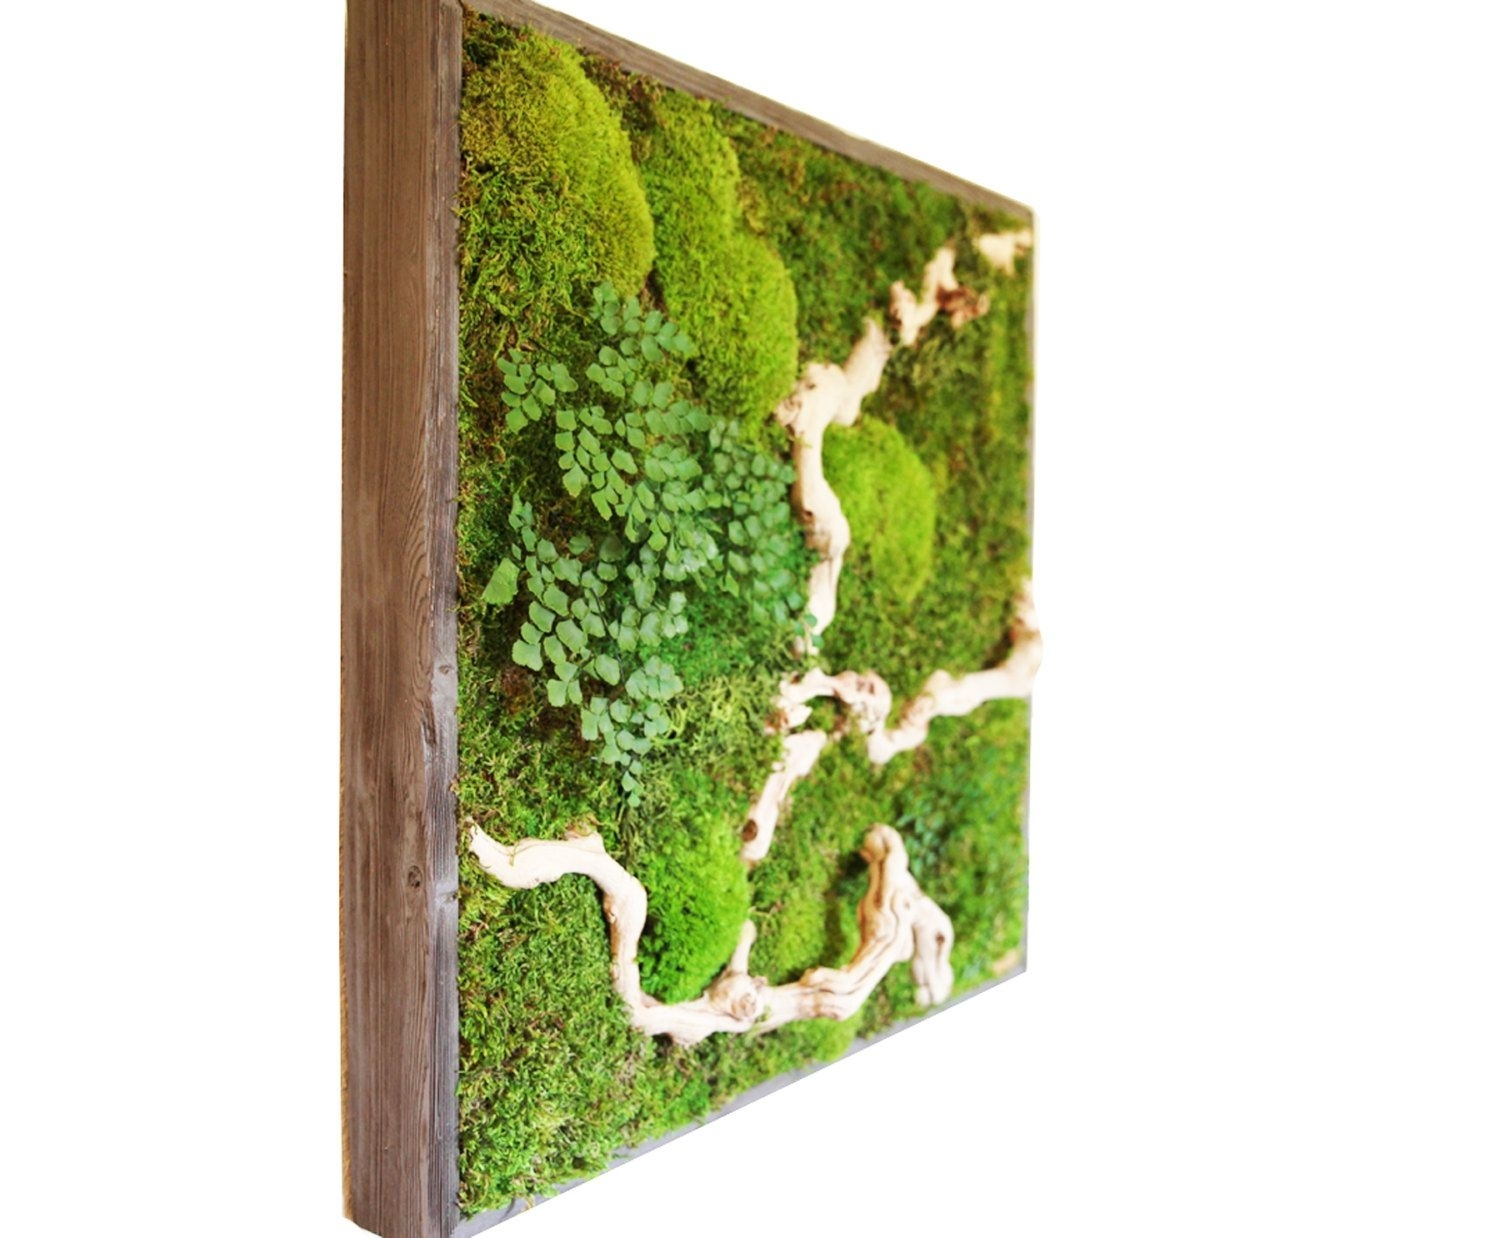 15 Spectacular Moss Wall Art Designs That Redefine The Living Wall With Regard To 2017 Green Wall Accents (View 1 of 15)